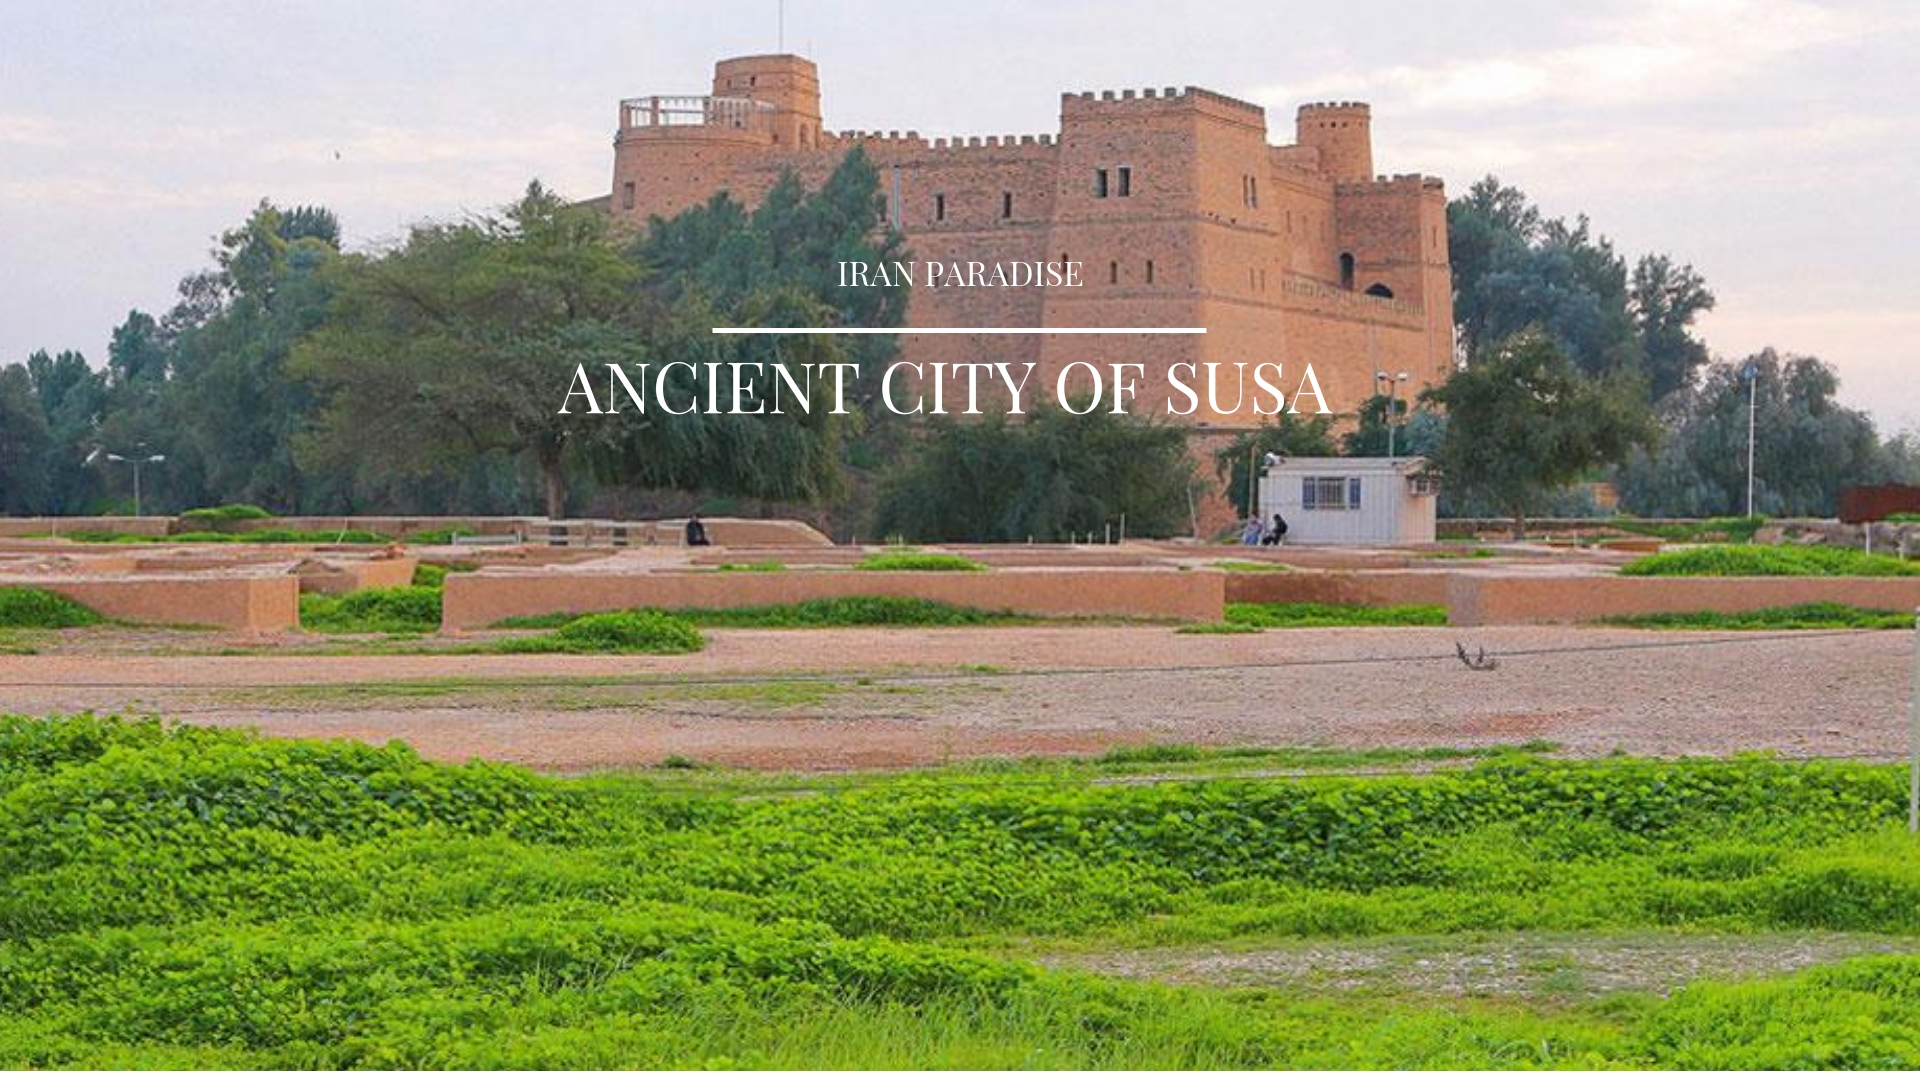 Ancient City of Susa